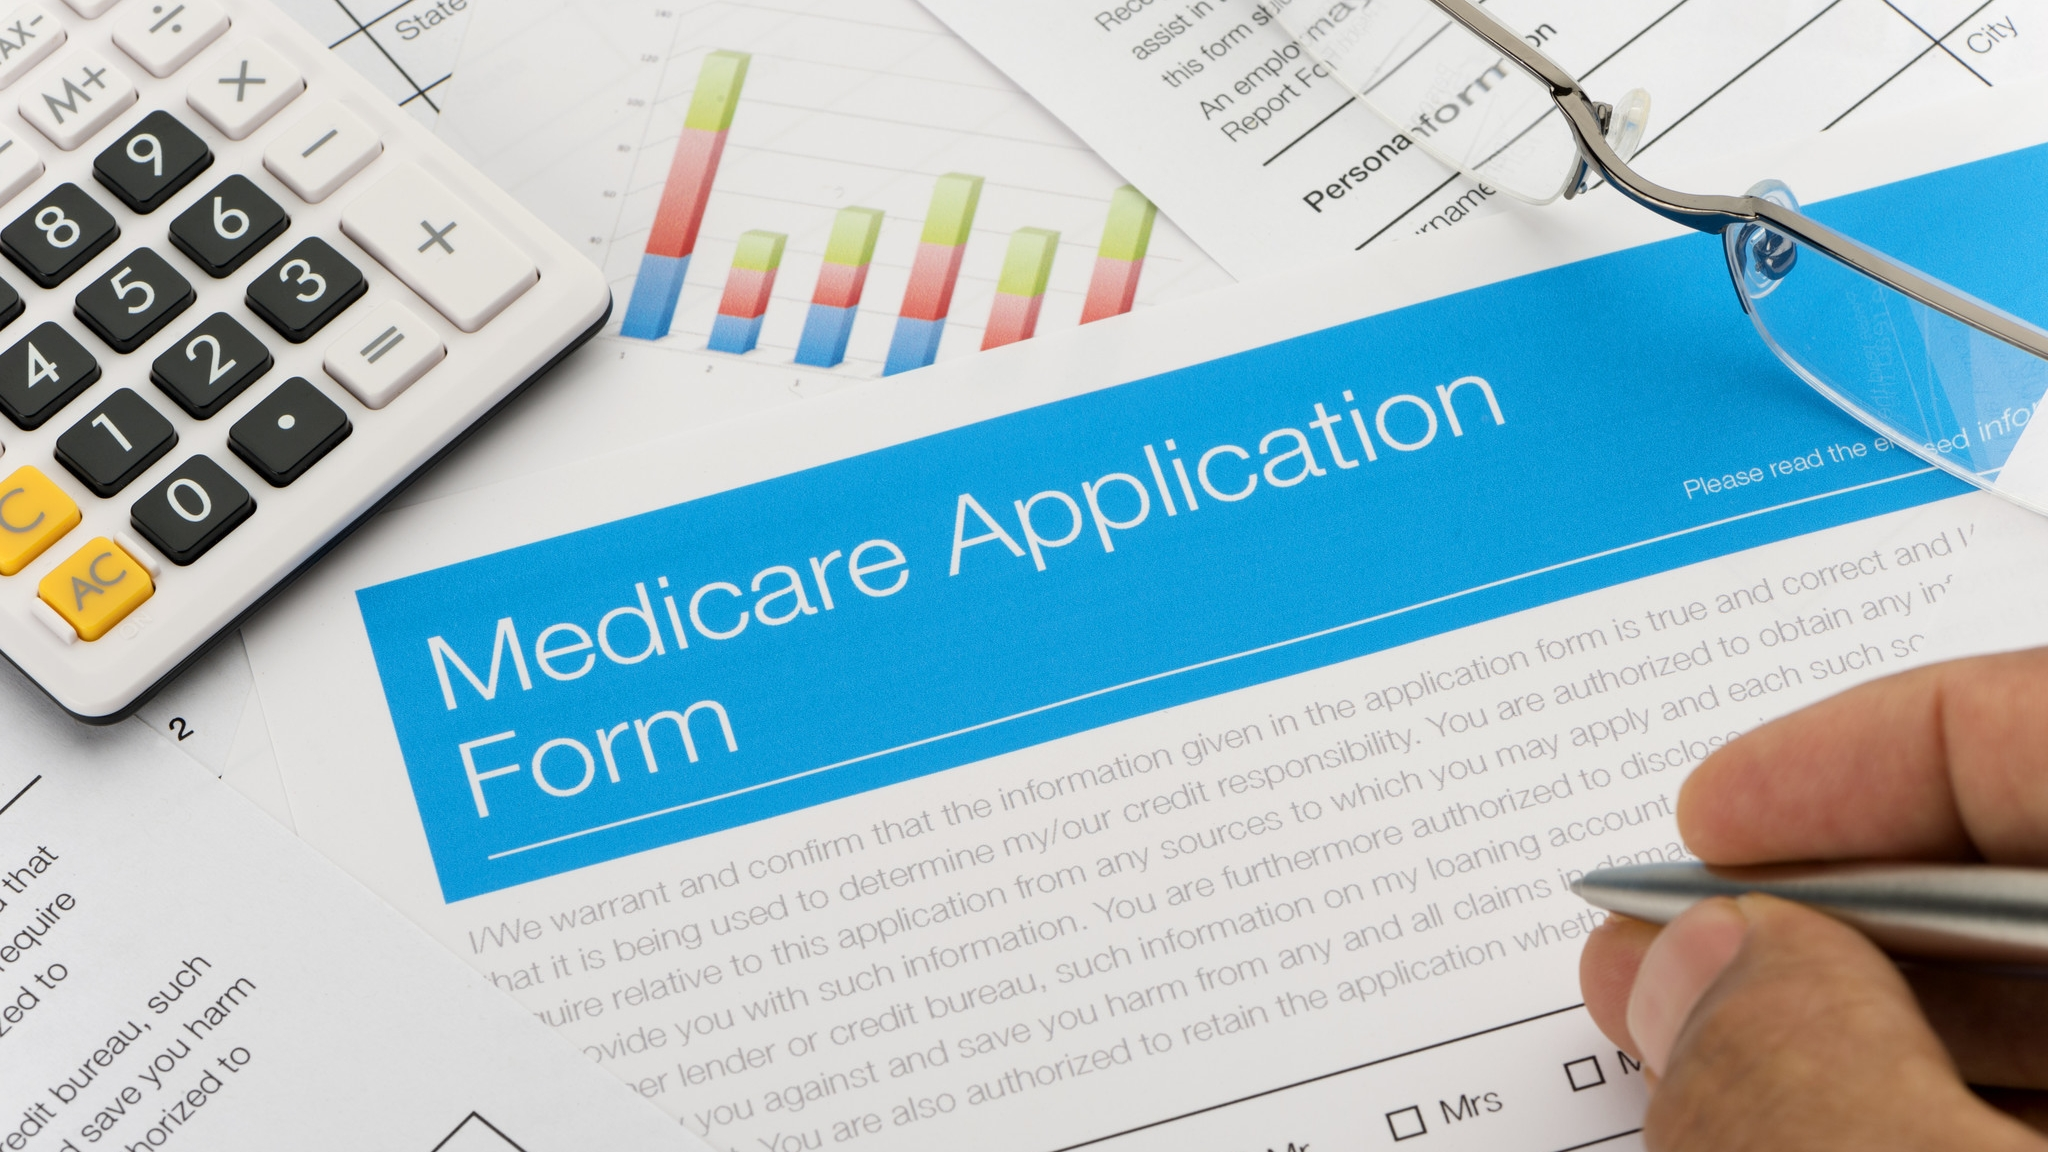 GUIDE TO MEDICARE: Where to go for help